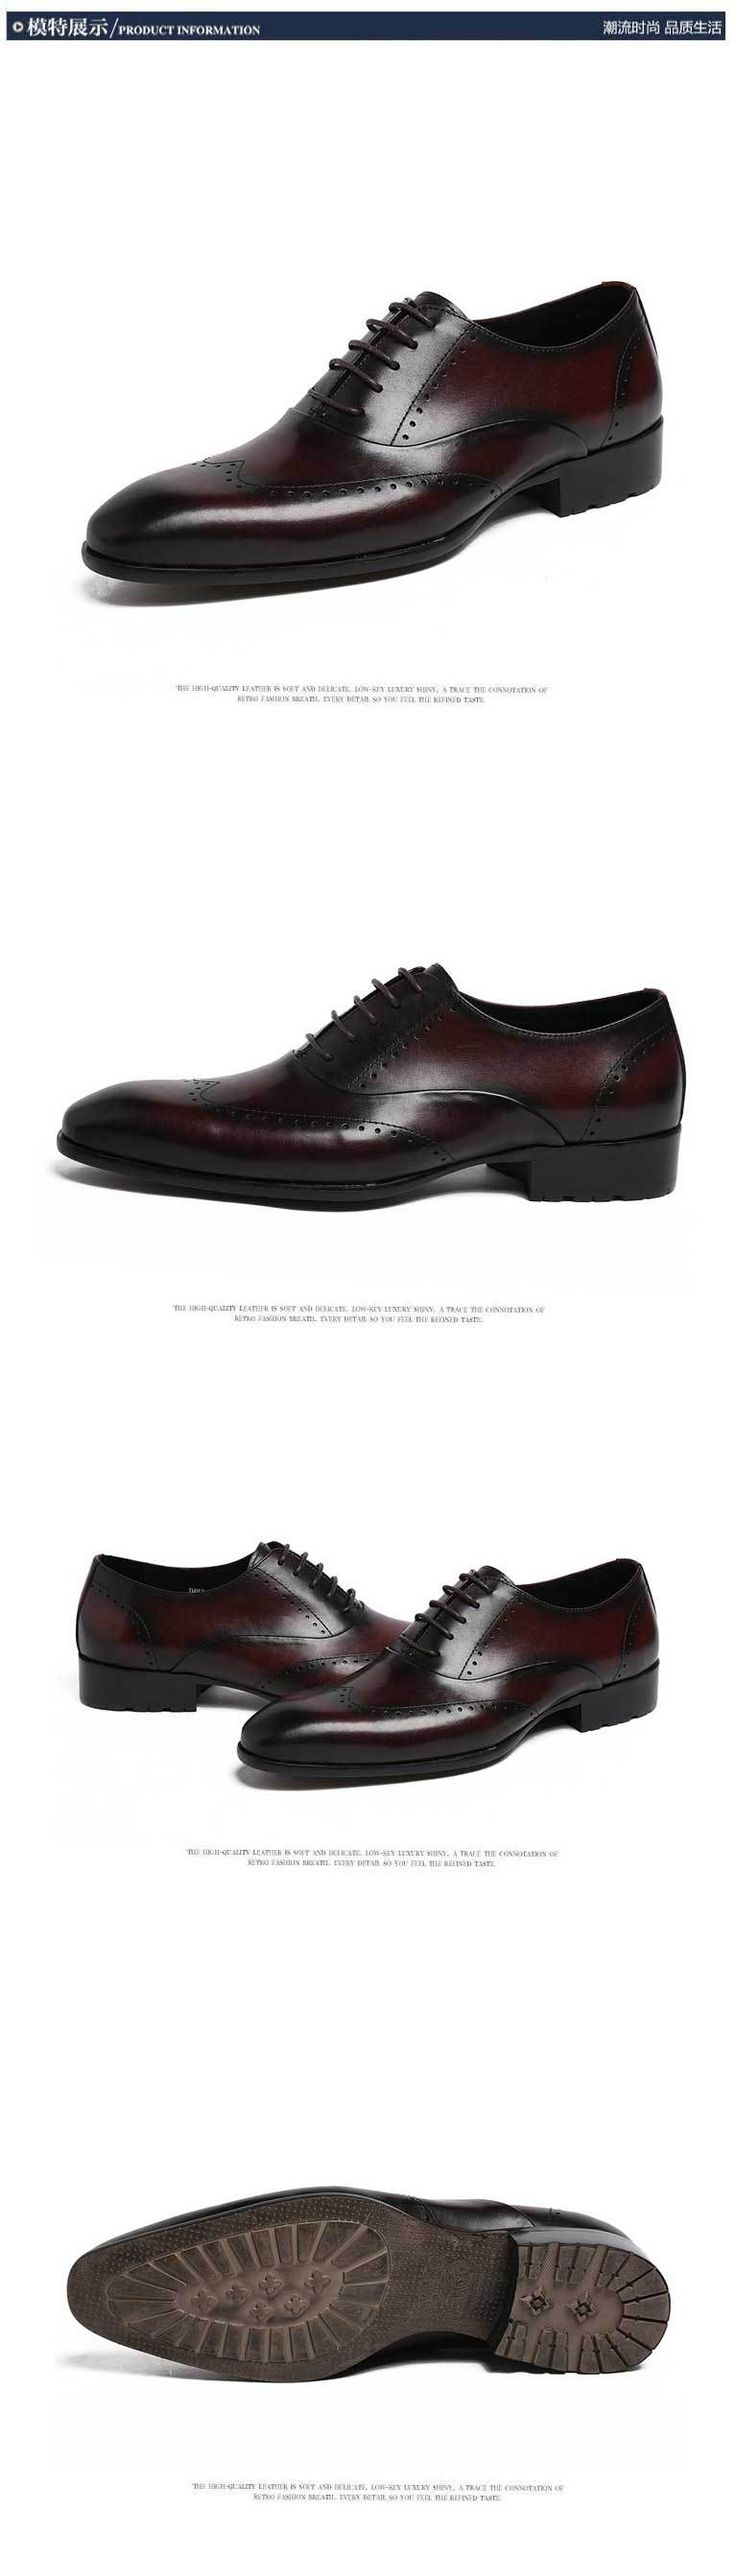 2015 New Spring And Autumn Full For Grain Soft Genuine Leather Men's England Pointed Toe Business Dress Office Men Oxfords Shoes